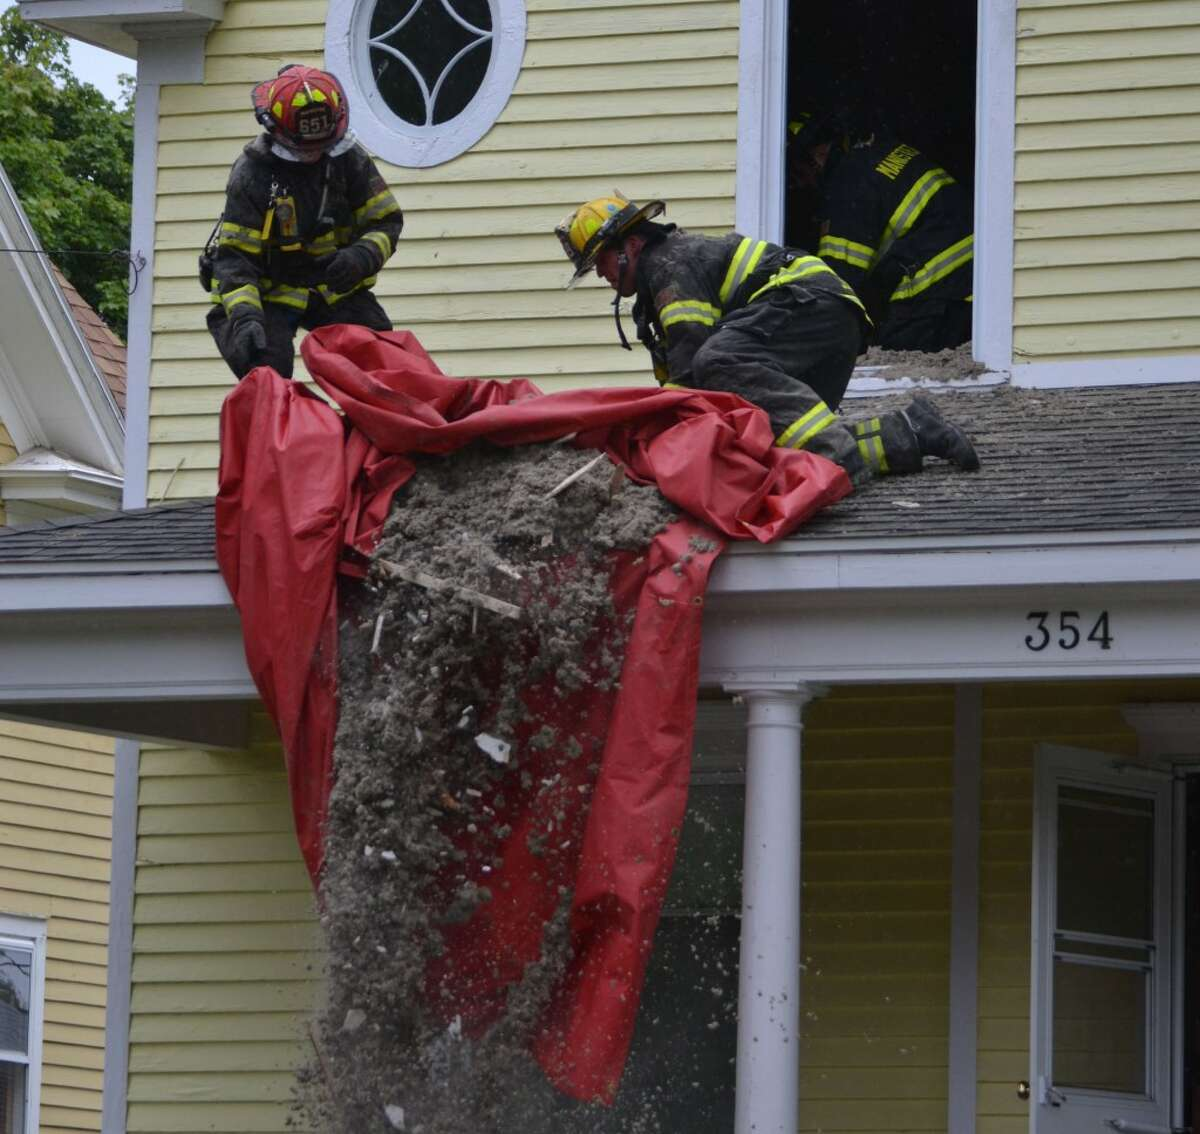 Firefighters dump debris from the second floor of a house on 5th St. in Manistee. They were removing insulation to contain an electrical fire, which broke out in the attic on Sunday afternoon. (Meg LeDuc/News Advocate)